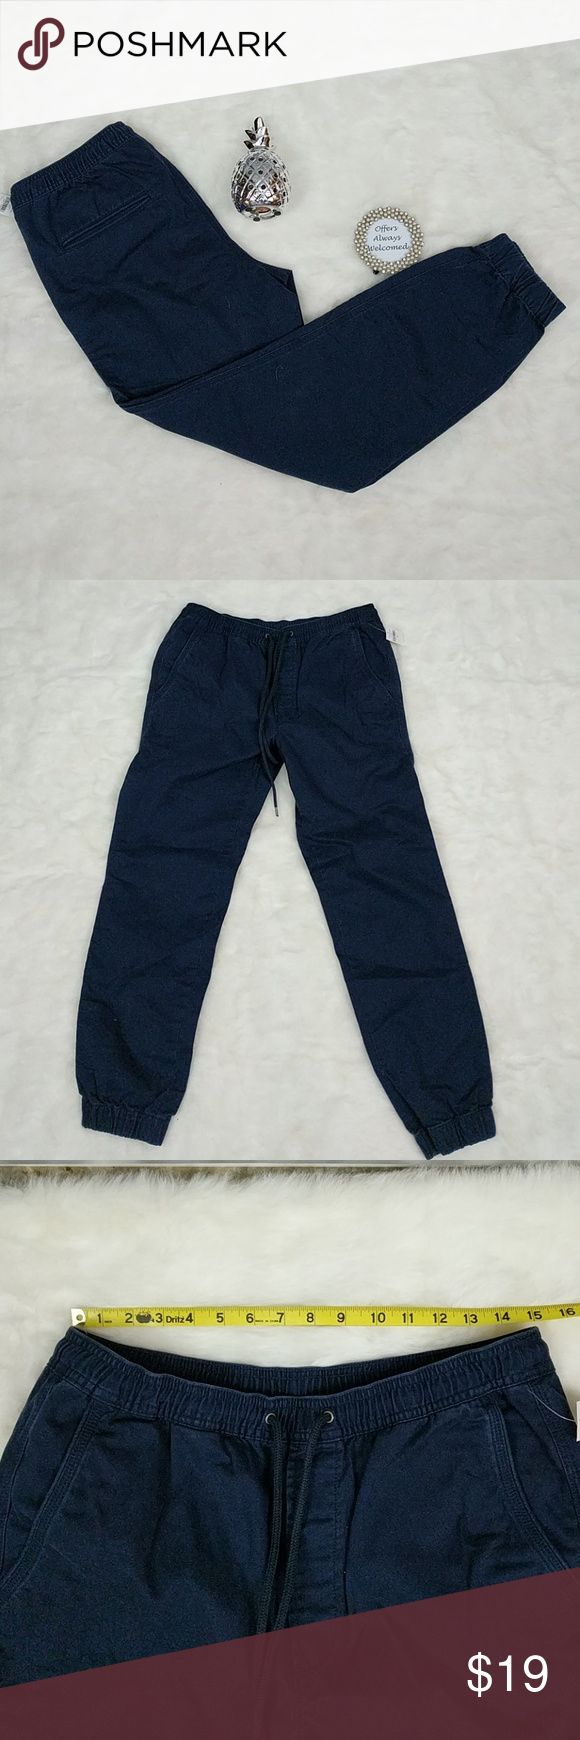 "Gap Navy Khaki Jogger Pants New with tags navy blue jogger pants from Gap. Pants have approximately 29"" inseam. GAP Pants Track Pants & Joggers"